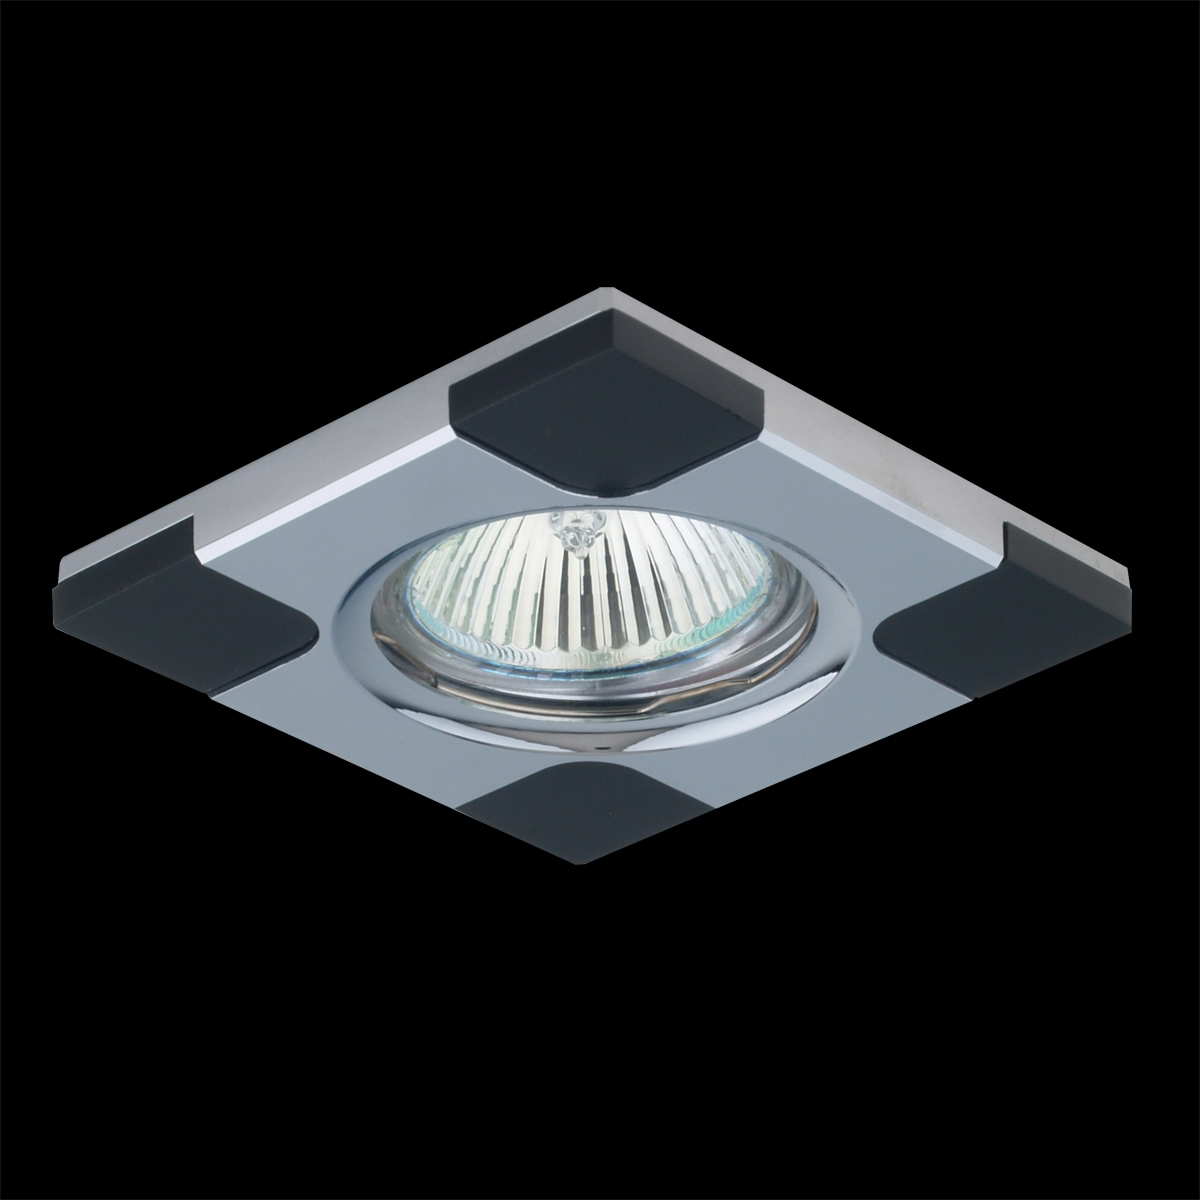 Downlight venge/chróm 1xGU10/50W